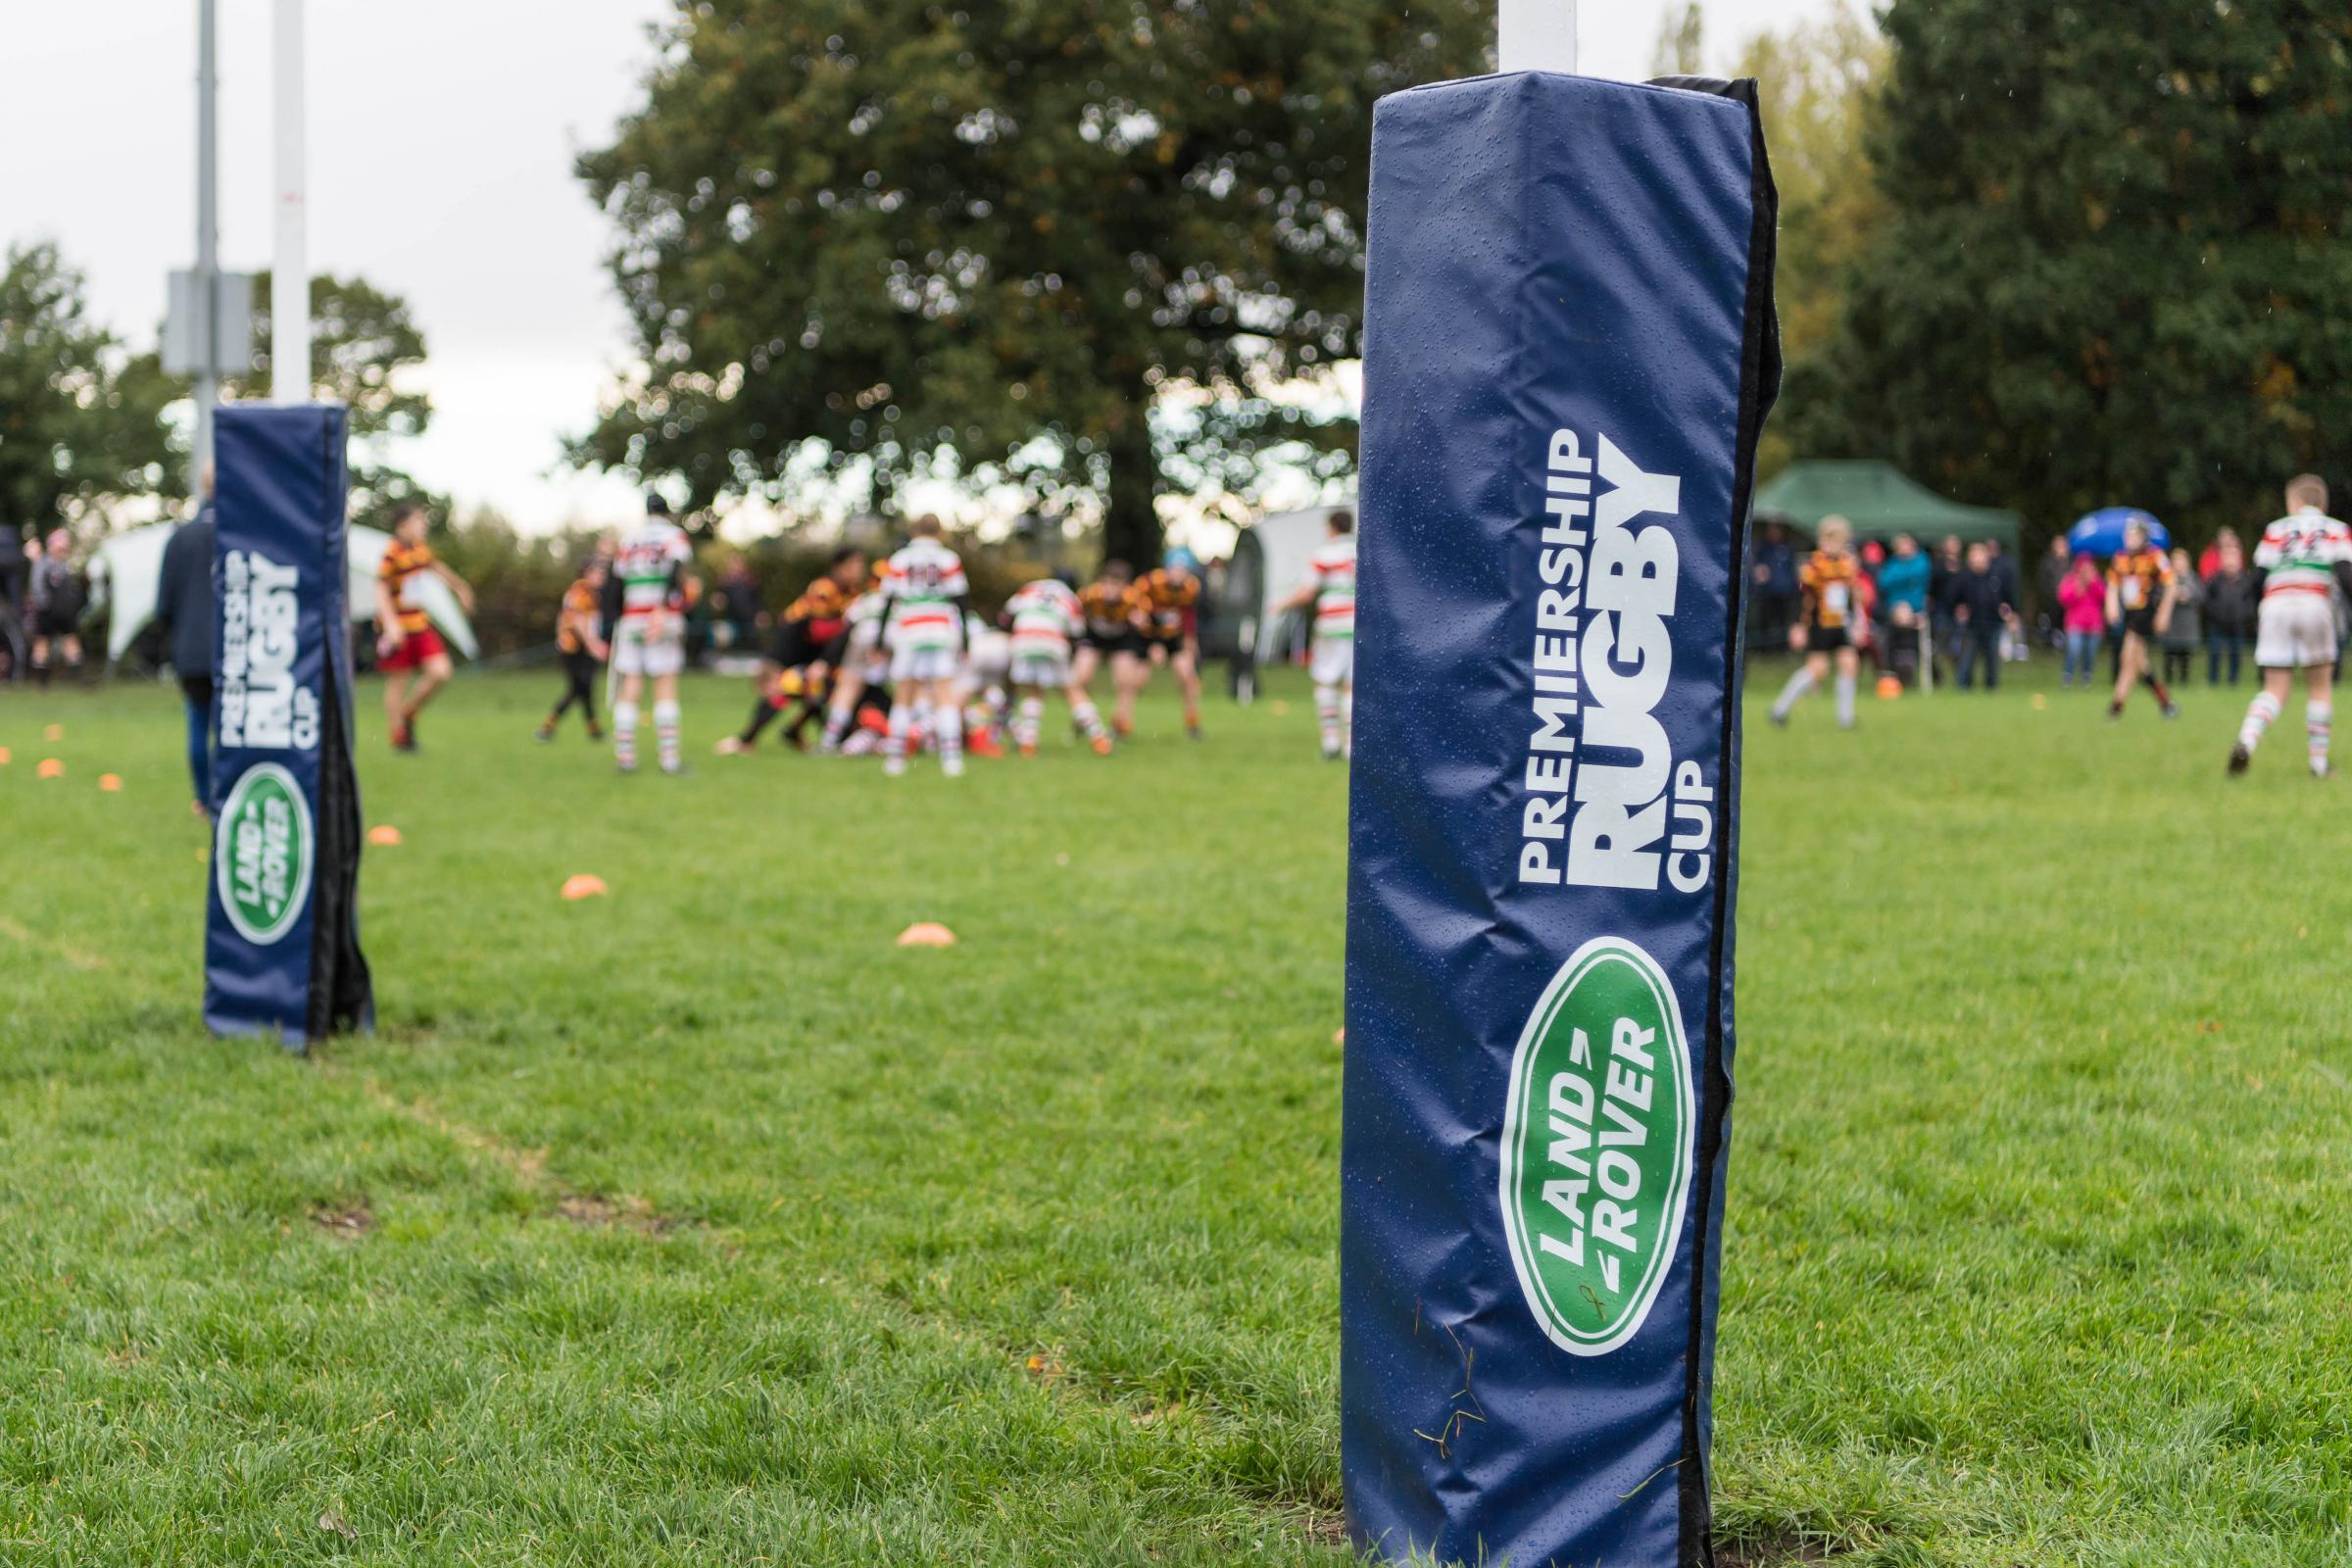 More than 30 clubs will lock horns at the Bristol Grammar School Sports Ground this weekend, with the likes of Old Bristolians, North Bristol and Keynsham competing.